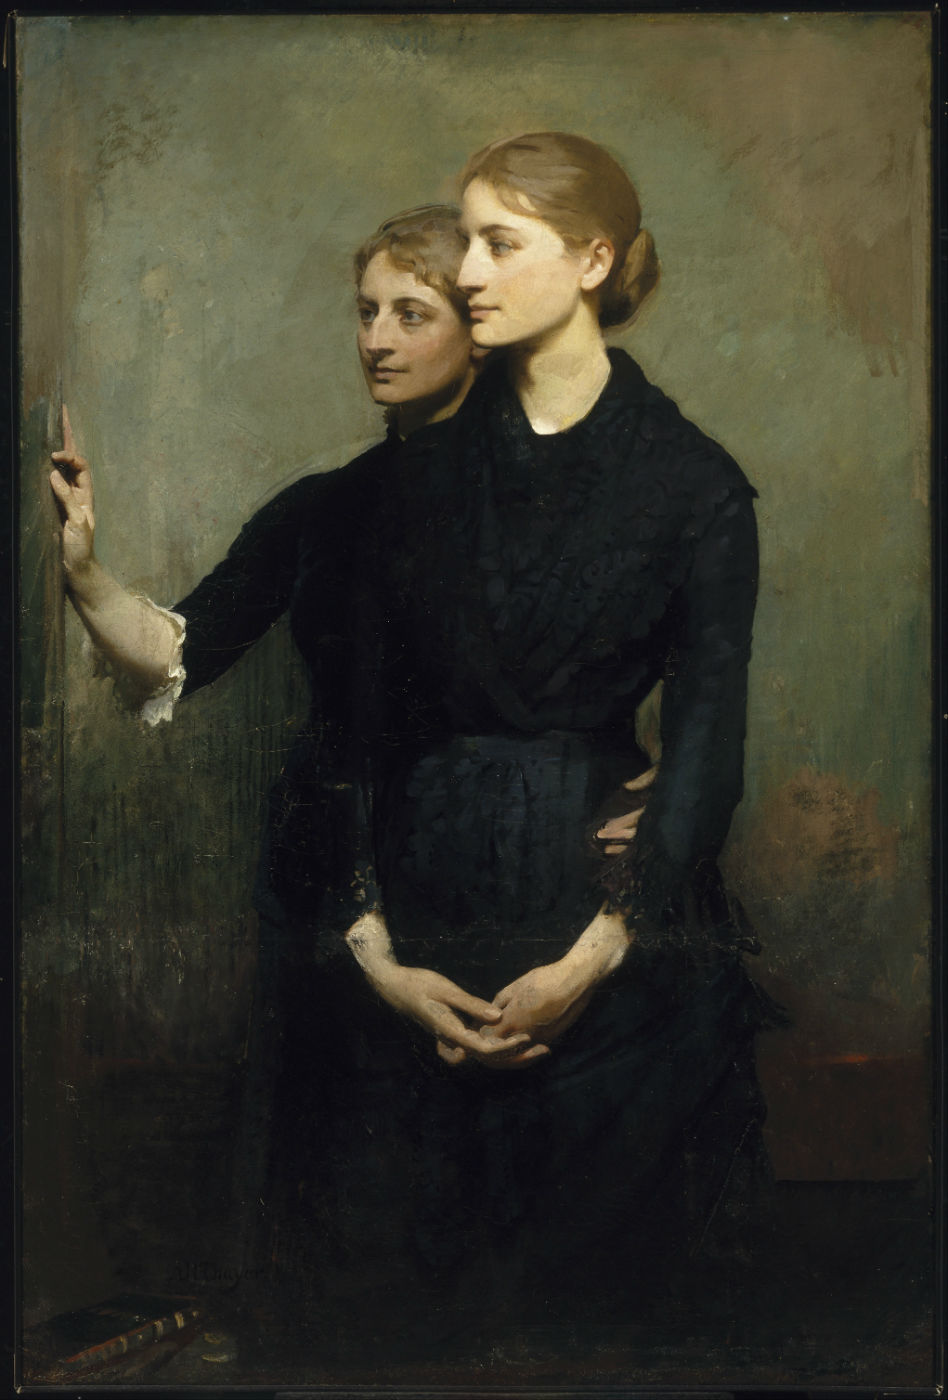 Abbott Handerson Thayer - The Sisters, 1884